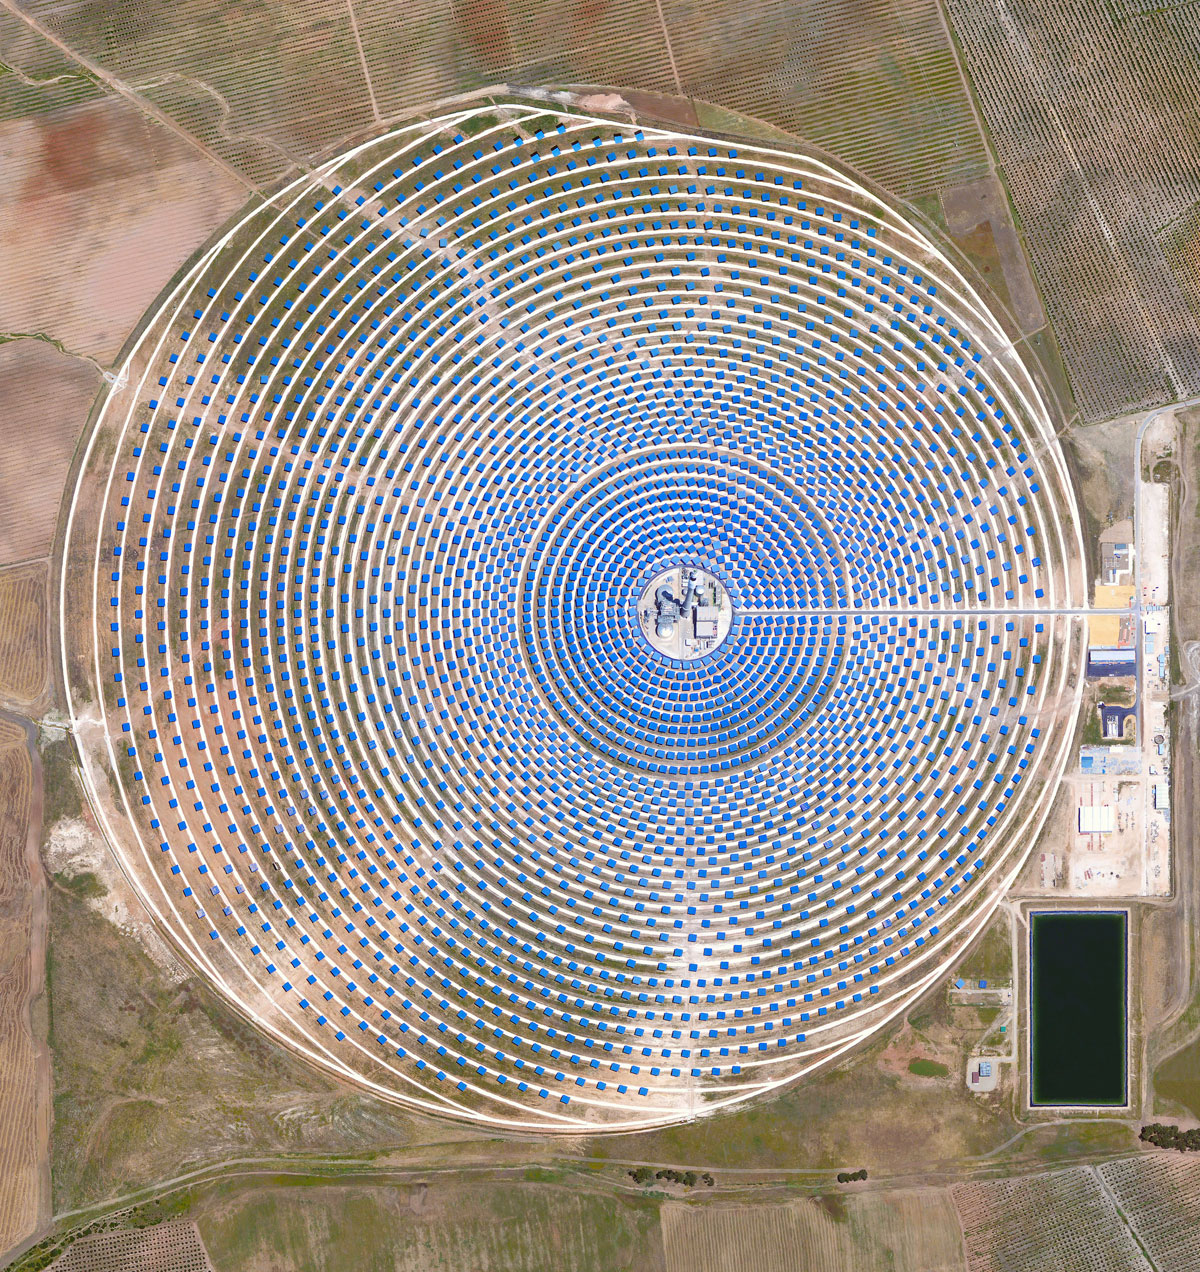 03 gemasolar thermosolar plant 15 High Res Photos That Will Give You a New Perspective on Earth